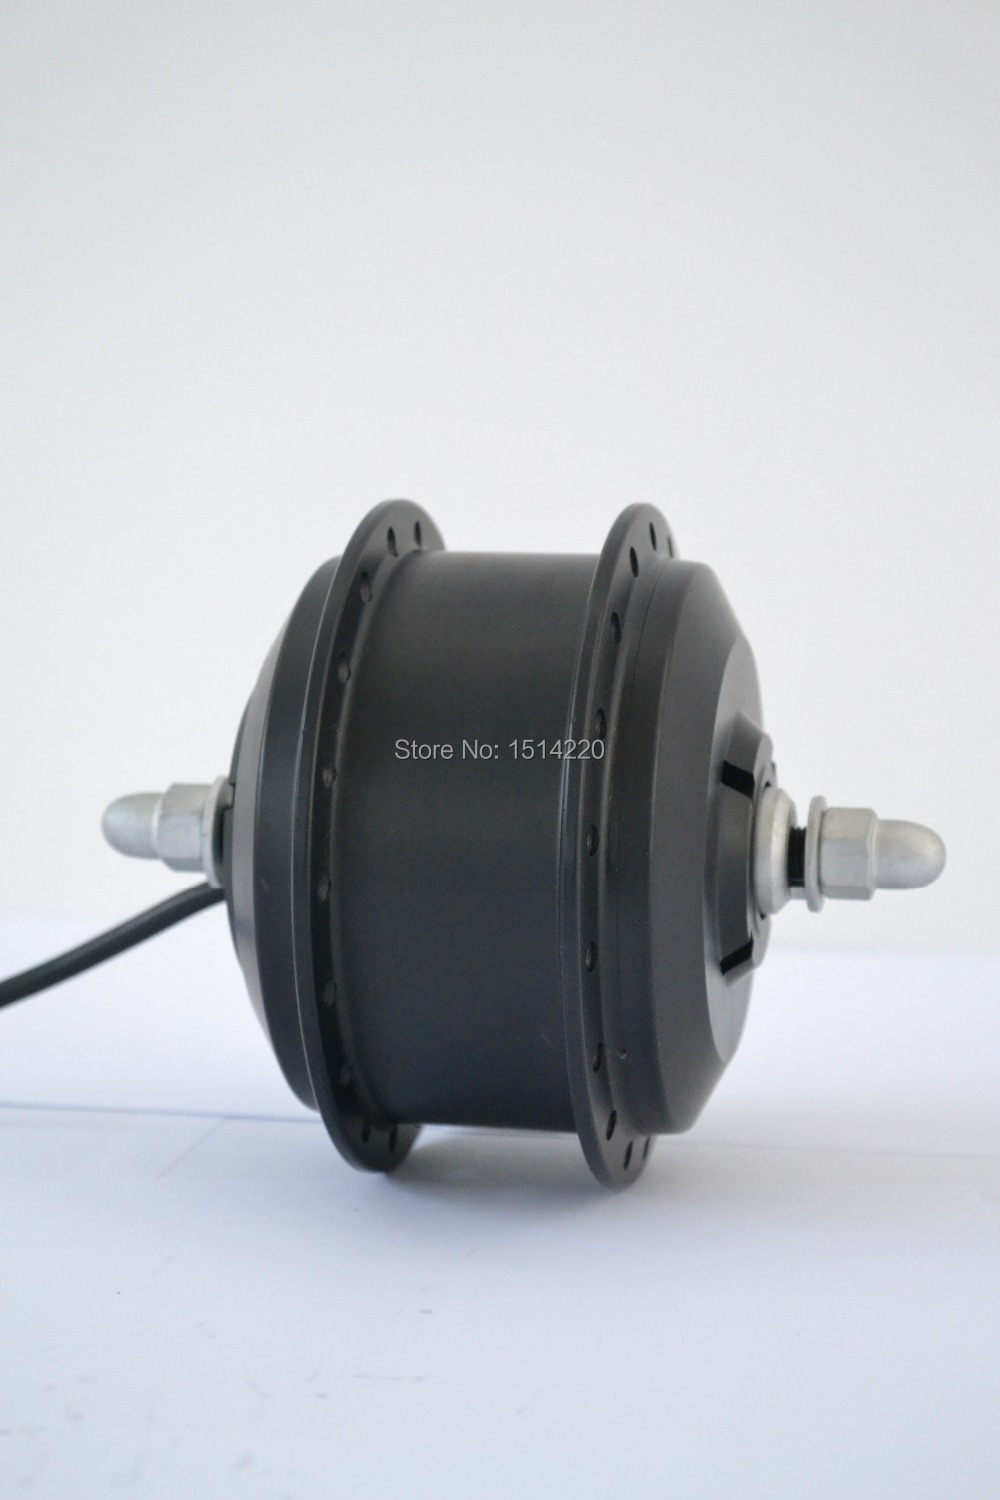 2.2Kg light for 12inch rim 48V 350W brushless gear hub front motor for electric bike&electric bicycle(China (Mainland))